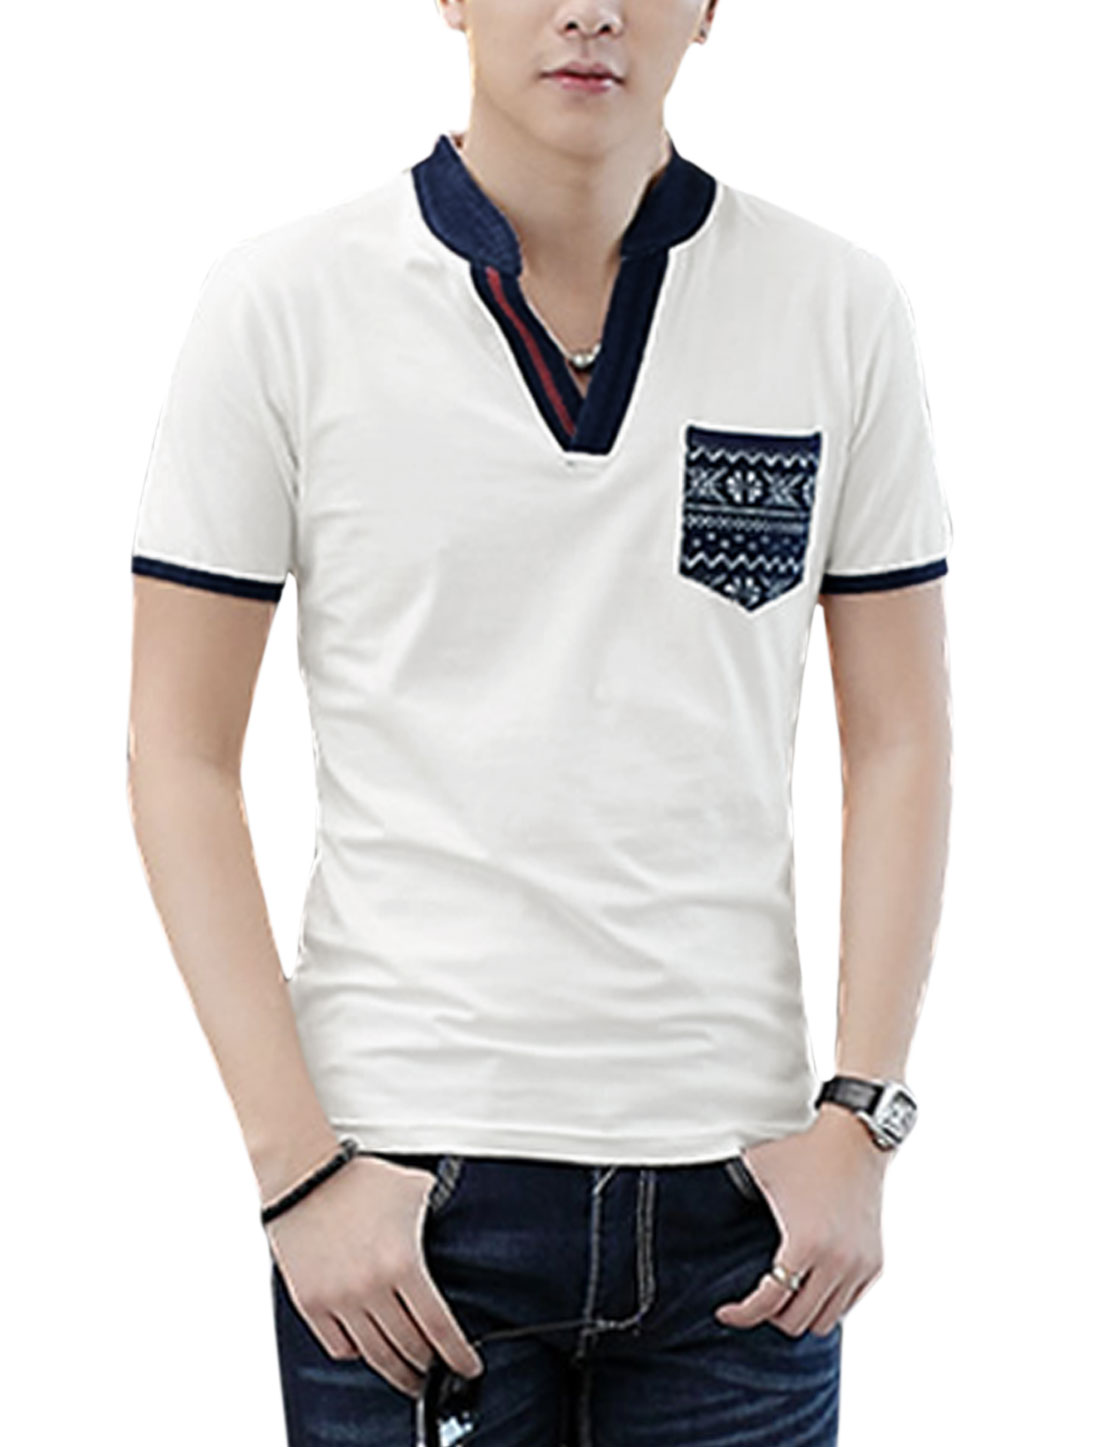 Men Split Neck Short Sleeve Panel Design Casual T-Shirt White M